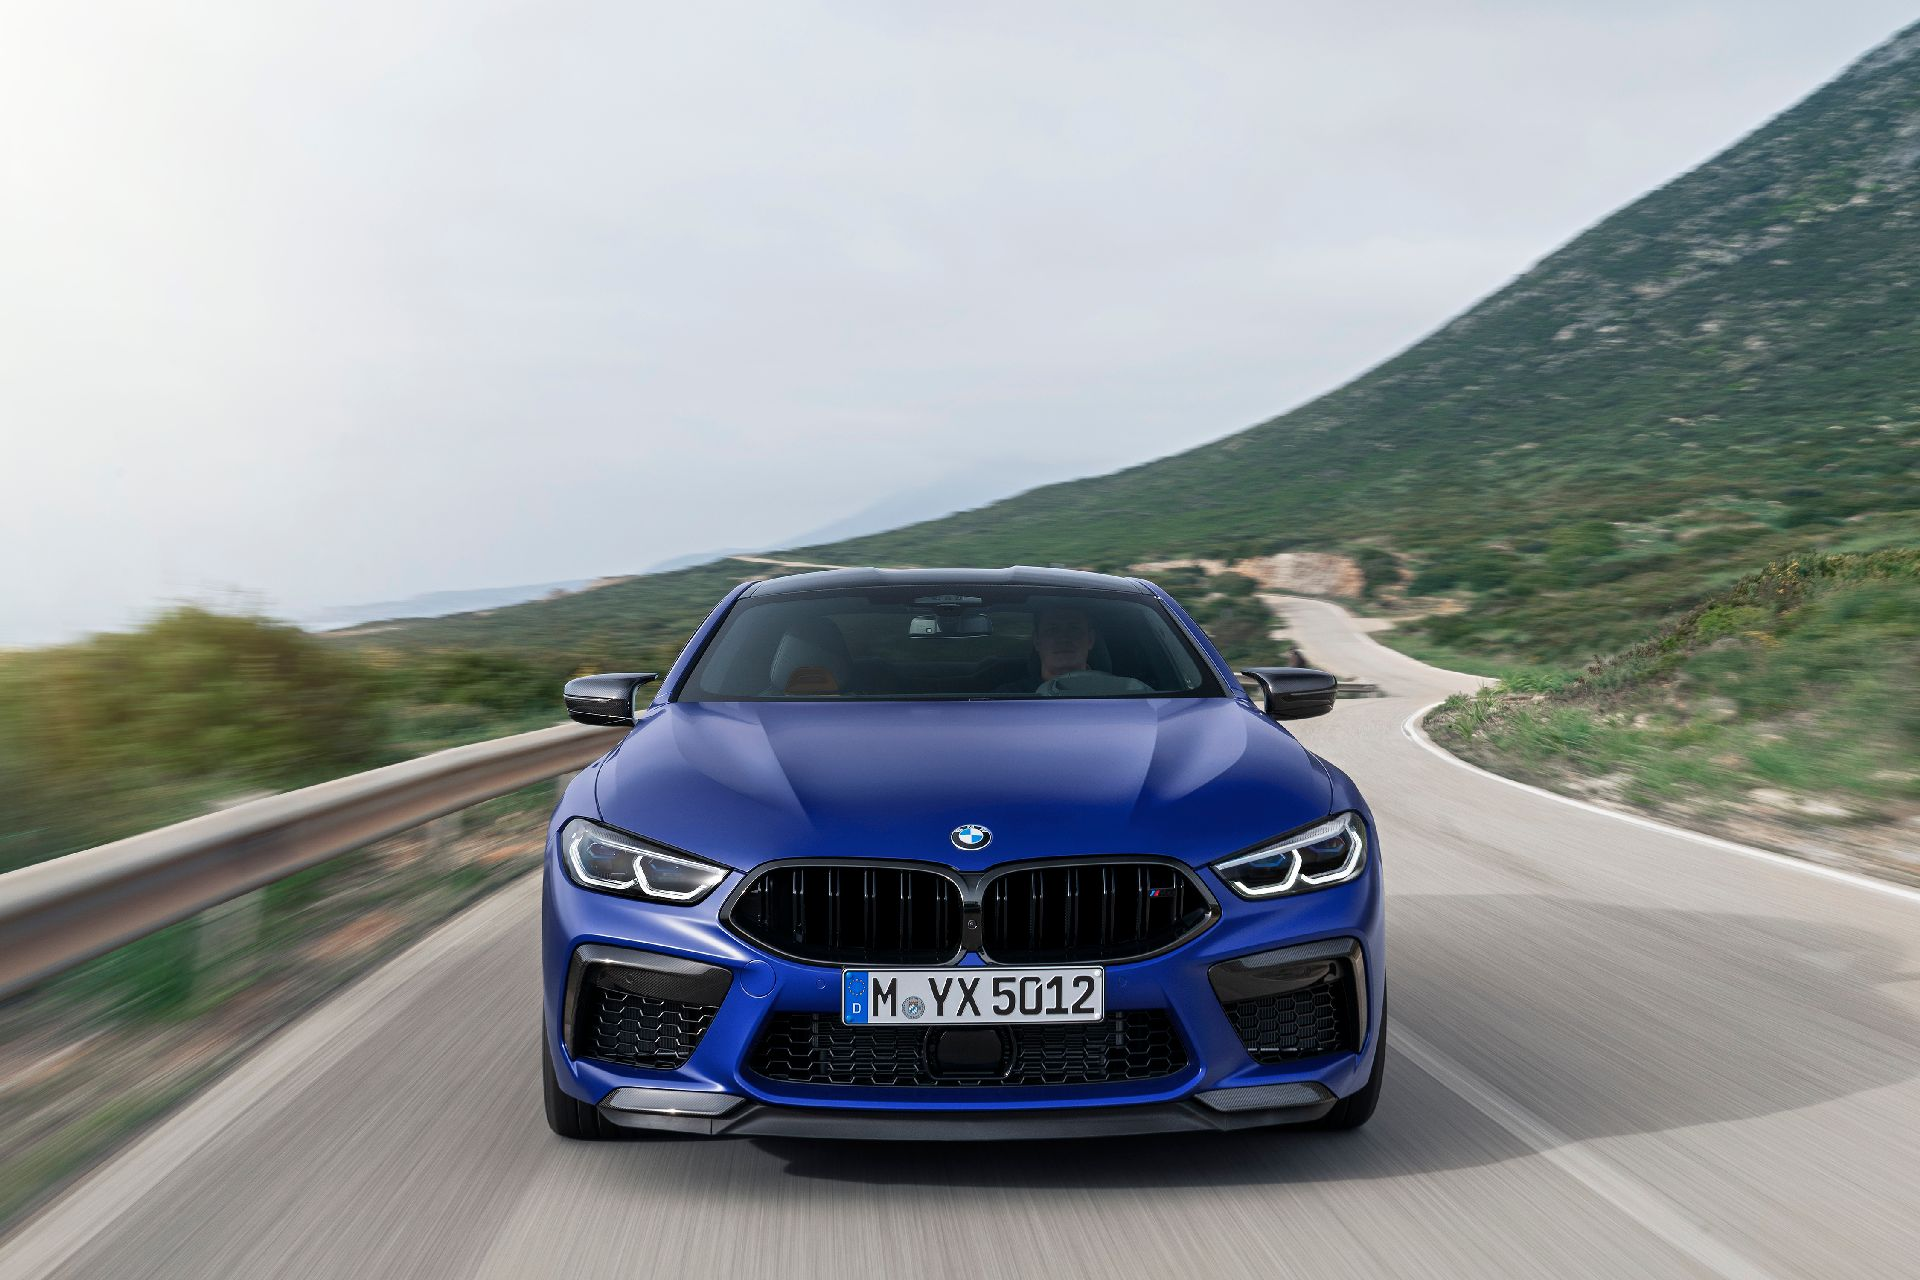 bmw-m8-coupe-15.jpg